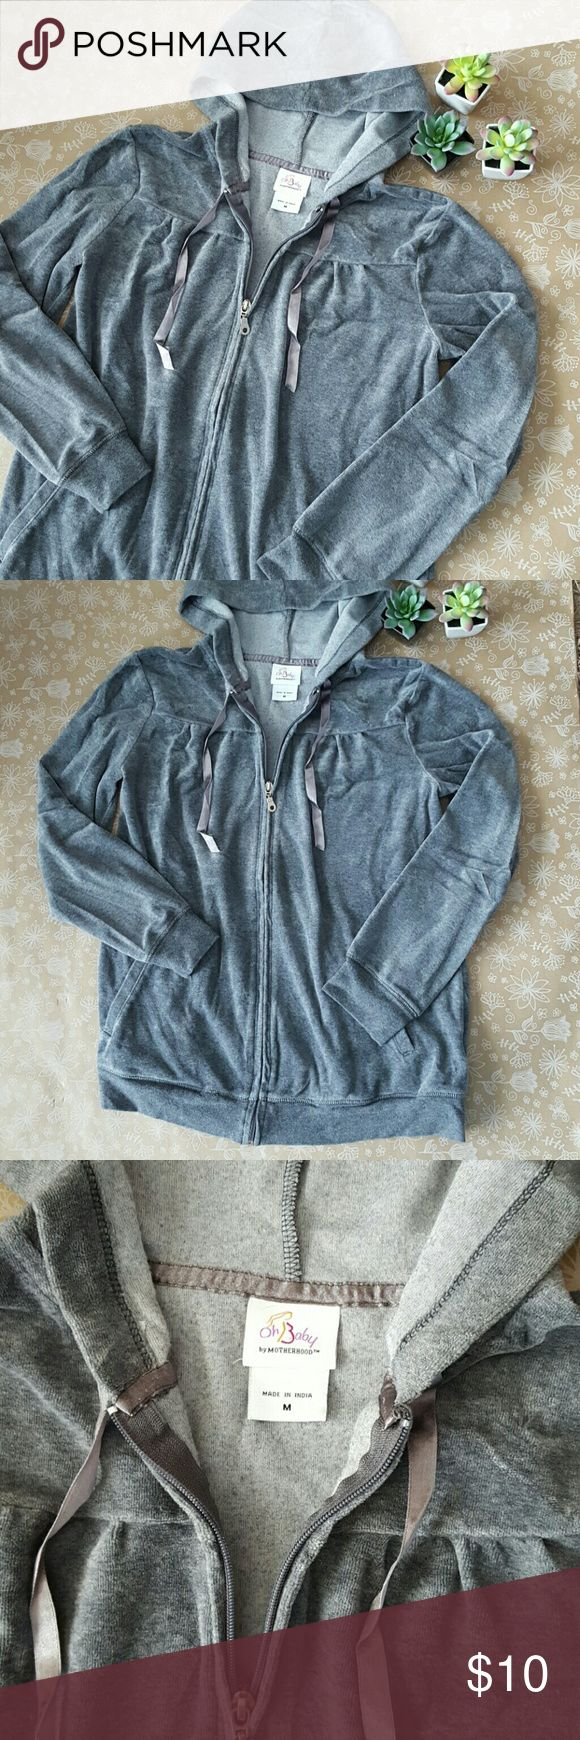 Maternity Zip Up Hoodie Velour Medium By Oh Baby by Motherhood. Excellent used condition!  I also have a black one listed! Very soft, long fit! Lightweight. Oh Baby by Motherhood Tops Sweatshirts & Hoodies